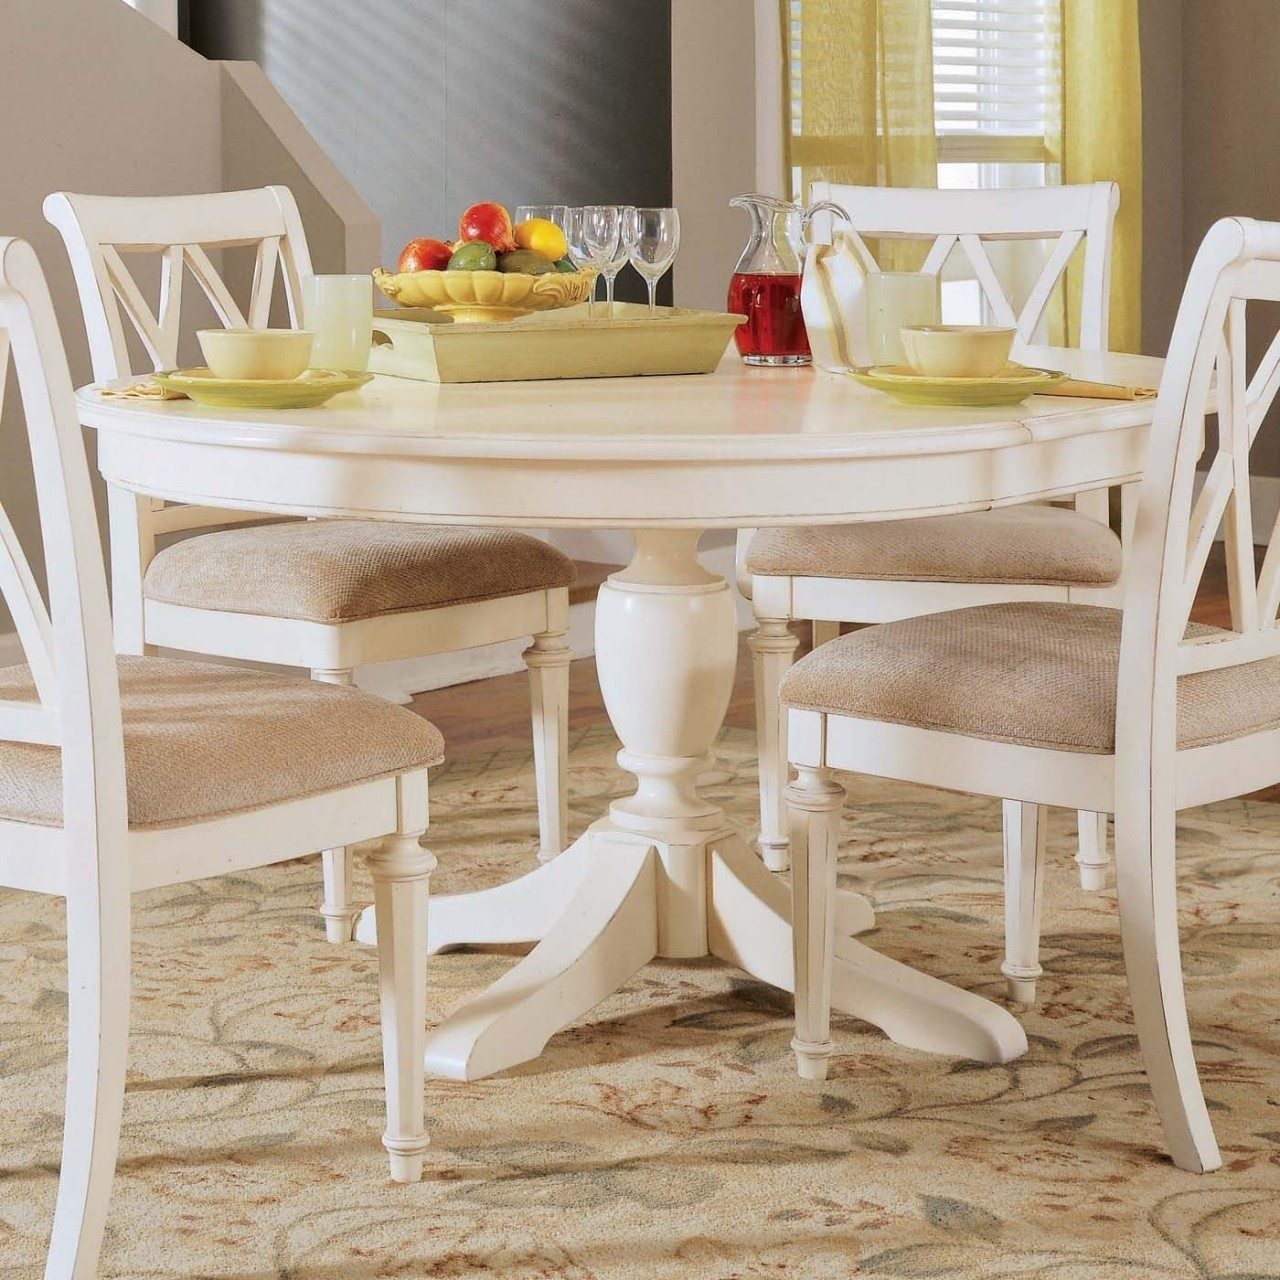 ikea-round-dining-table-is-also-a-kind-of-white-dining-table-and-chairs-ikea-angels